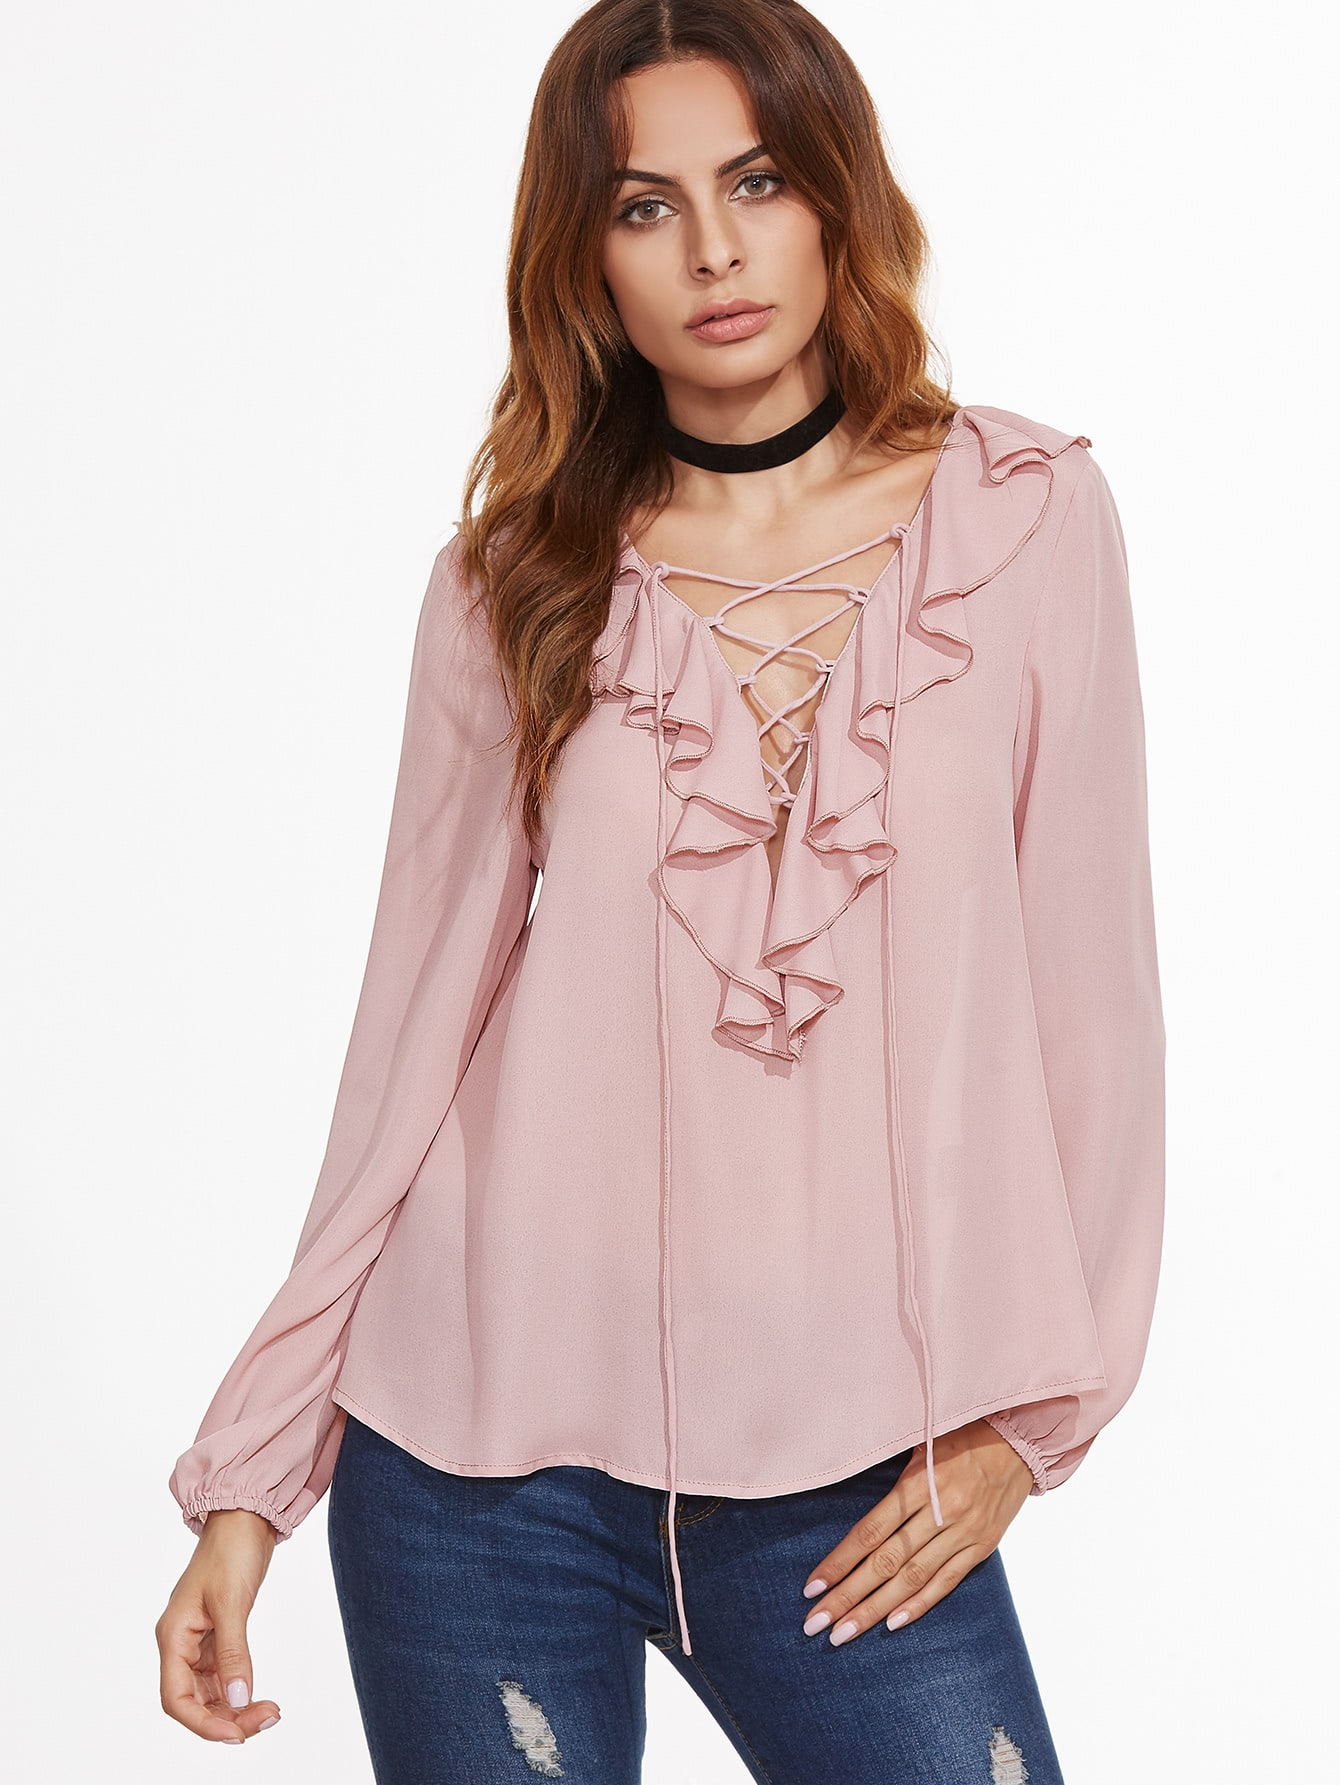 V Neckline Lace Up Frill Trim Blouse Shein In